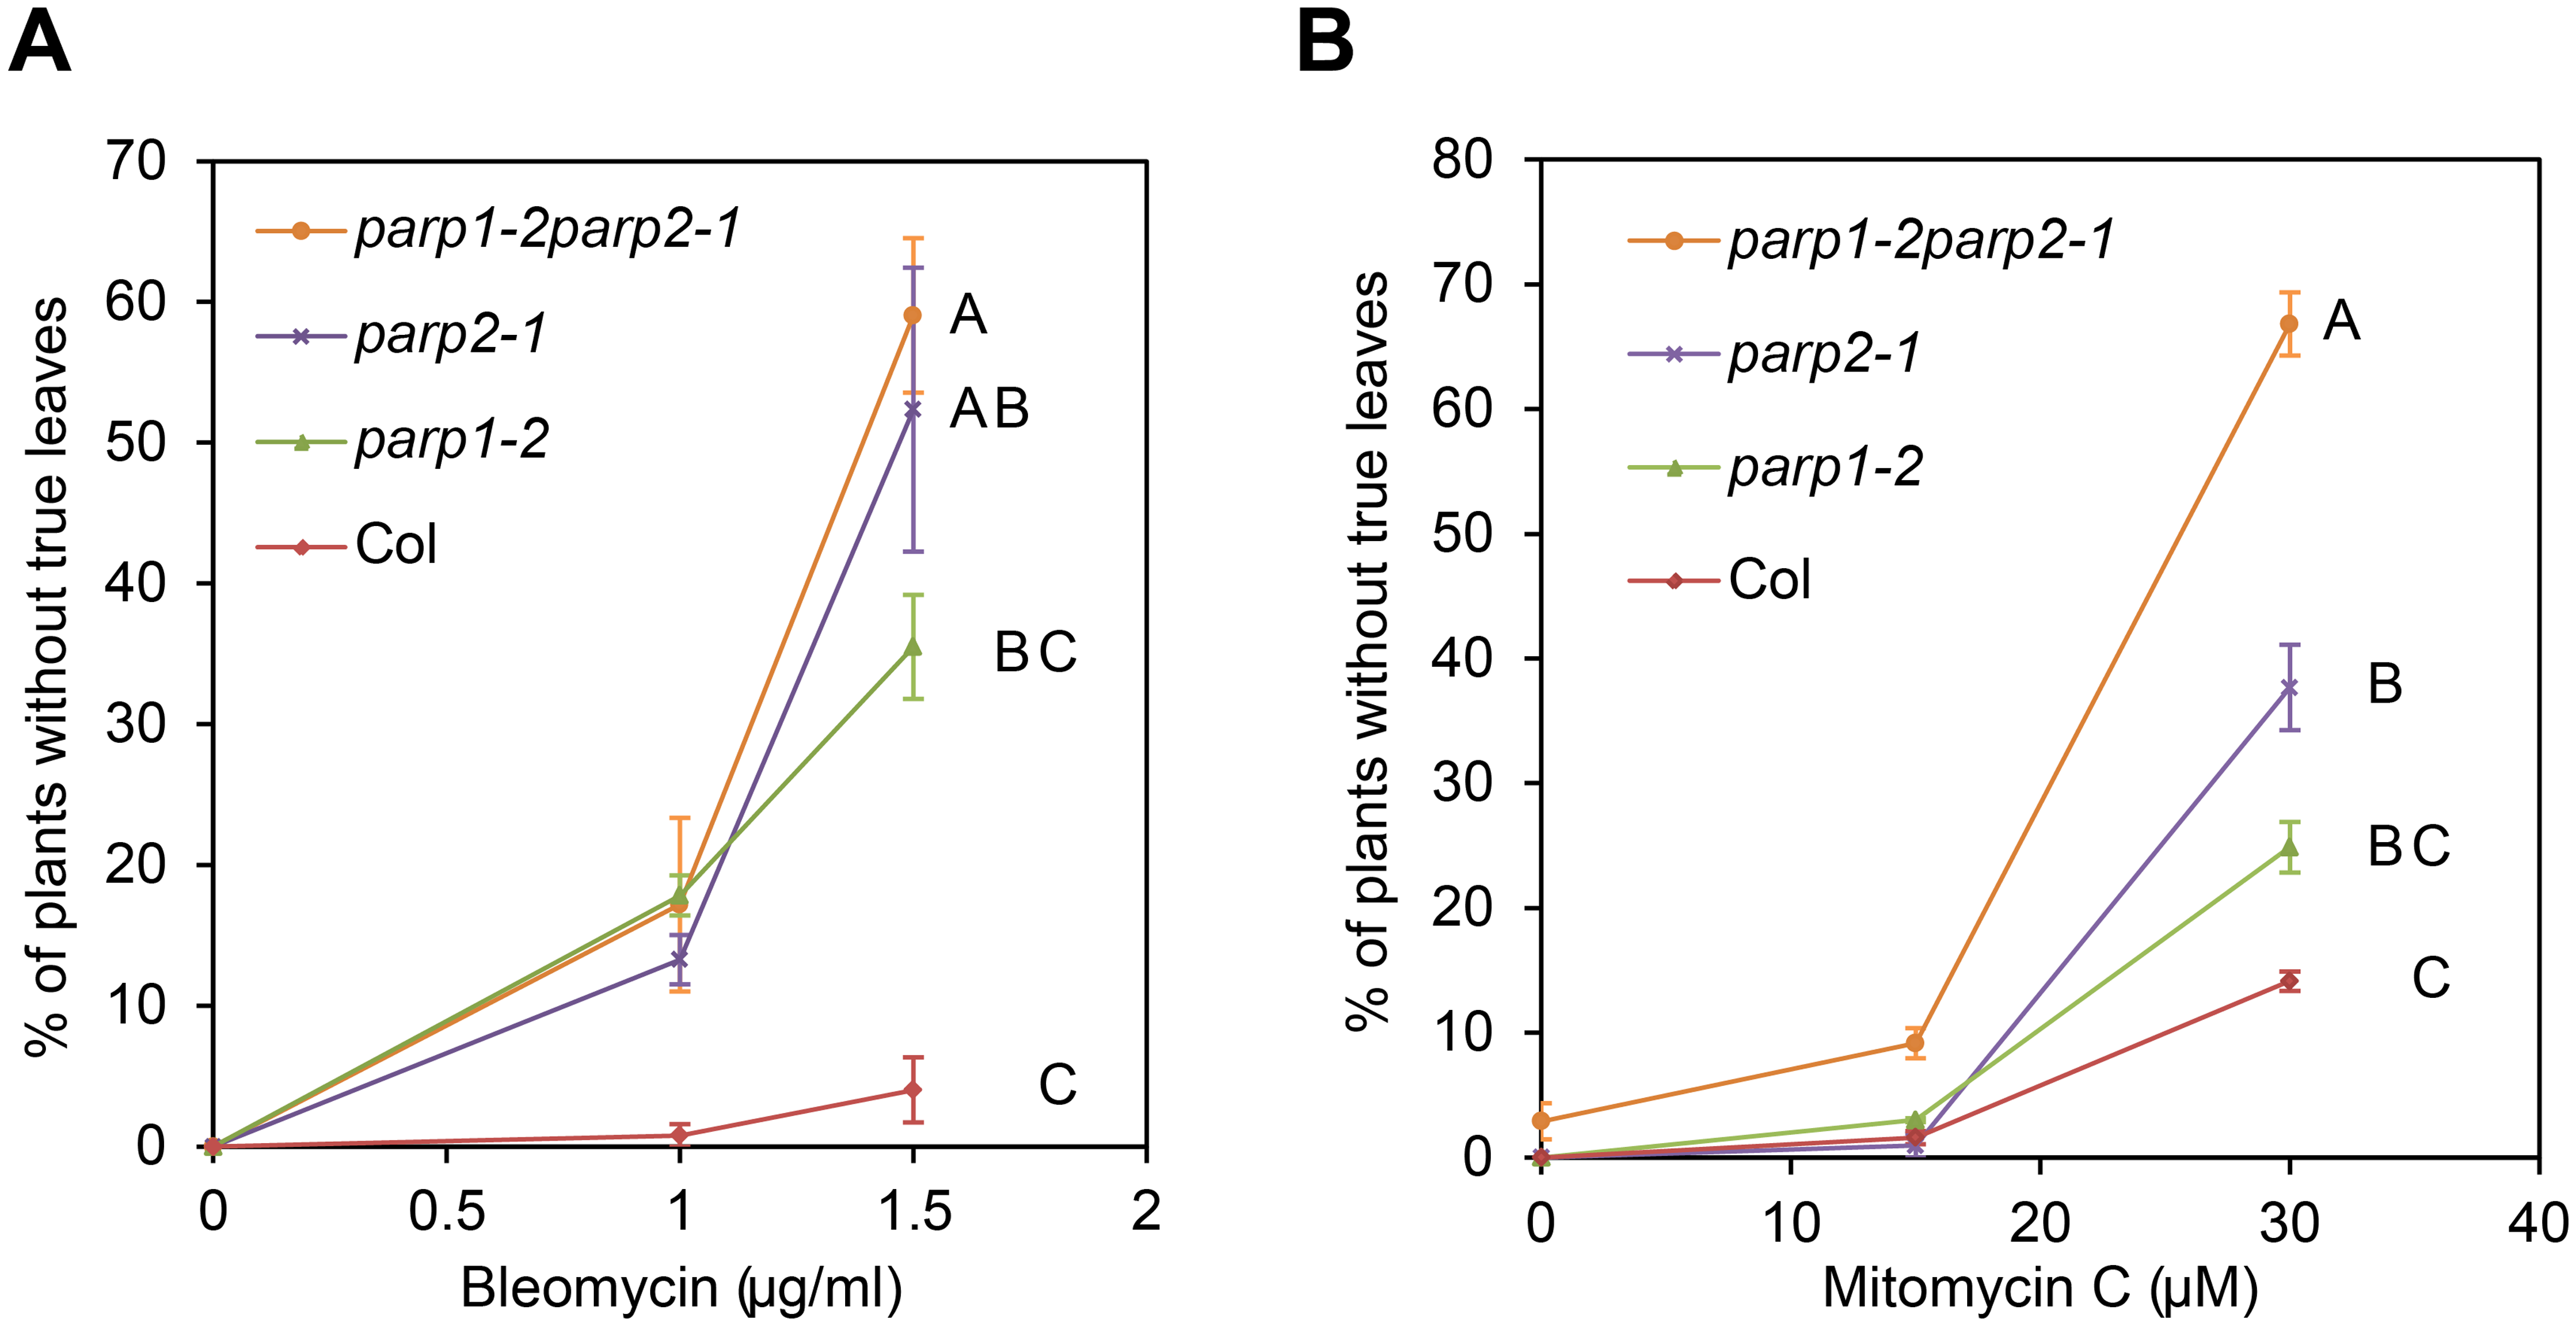 Arabidopsis <i>parp</i> mutants are hypersensitive to DNA damage agents.